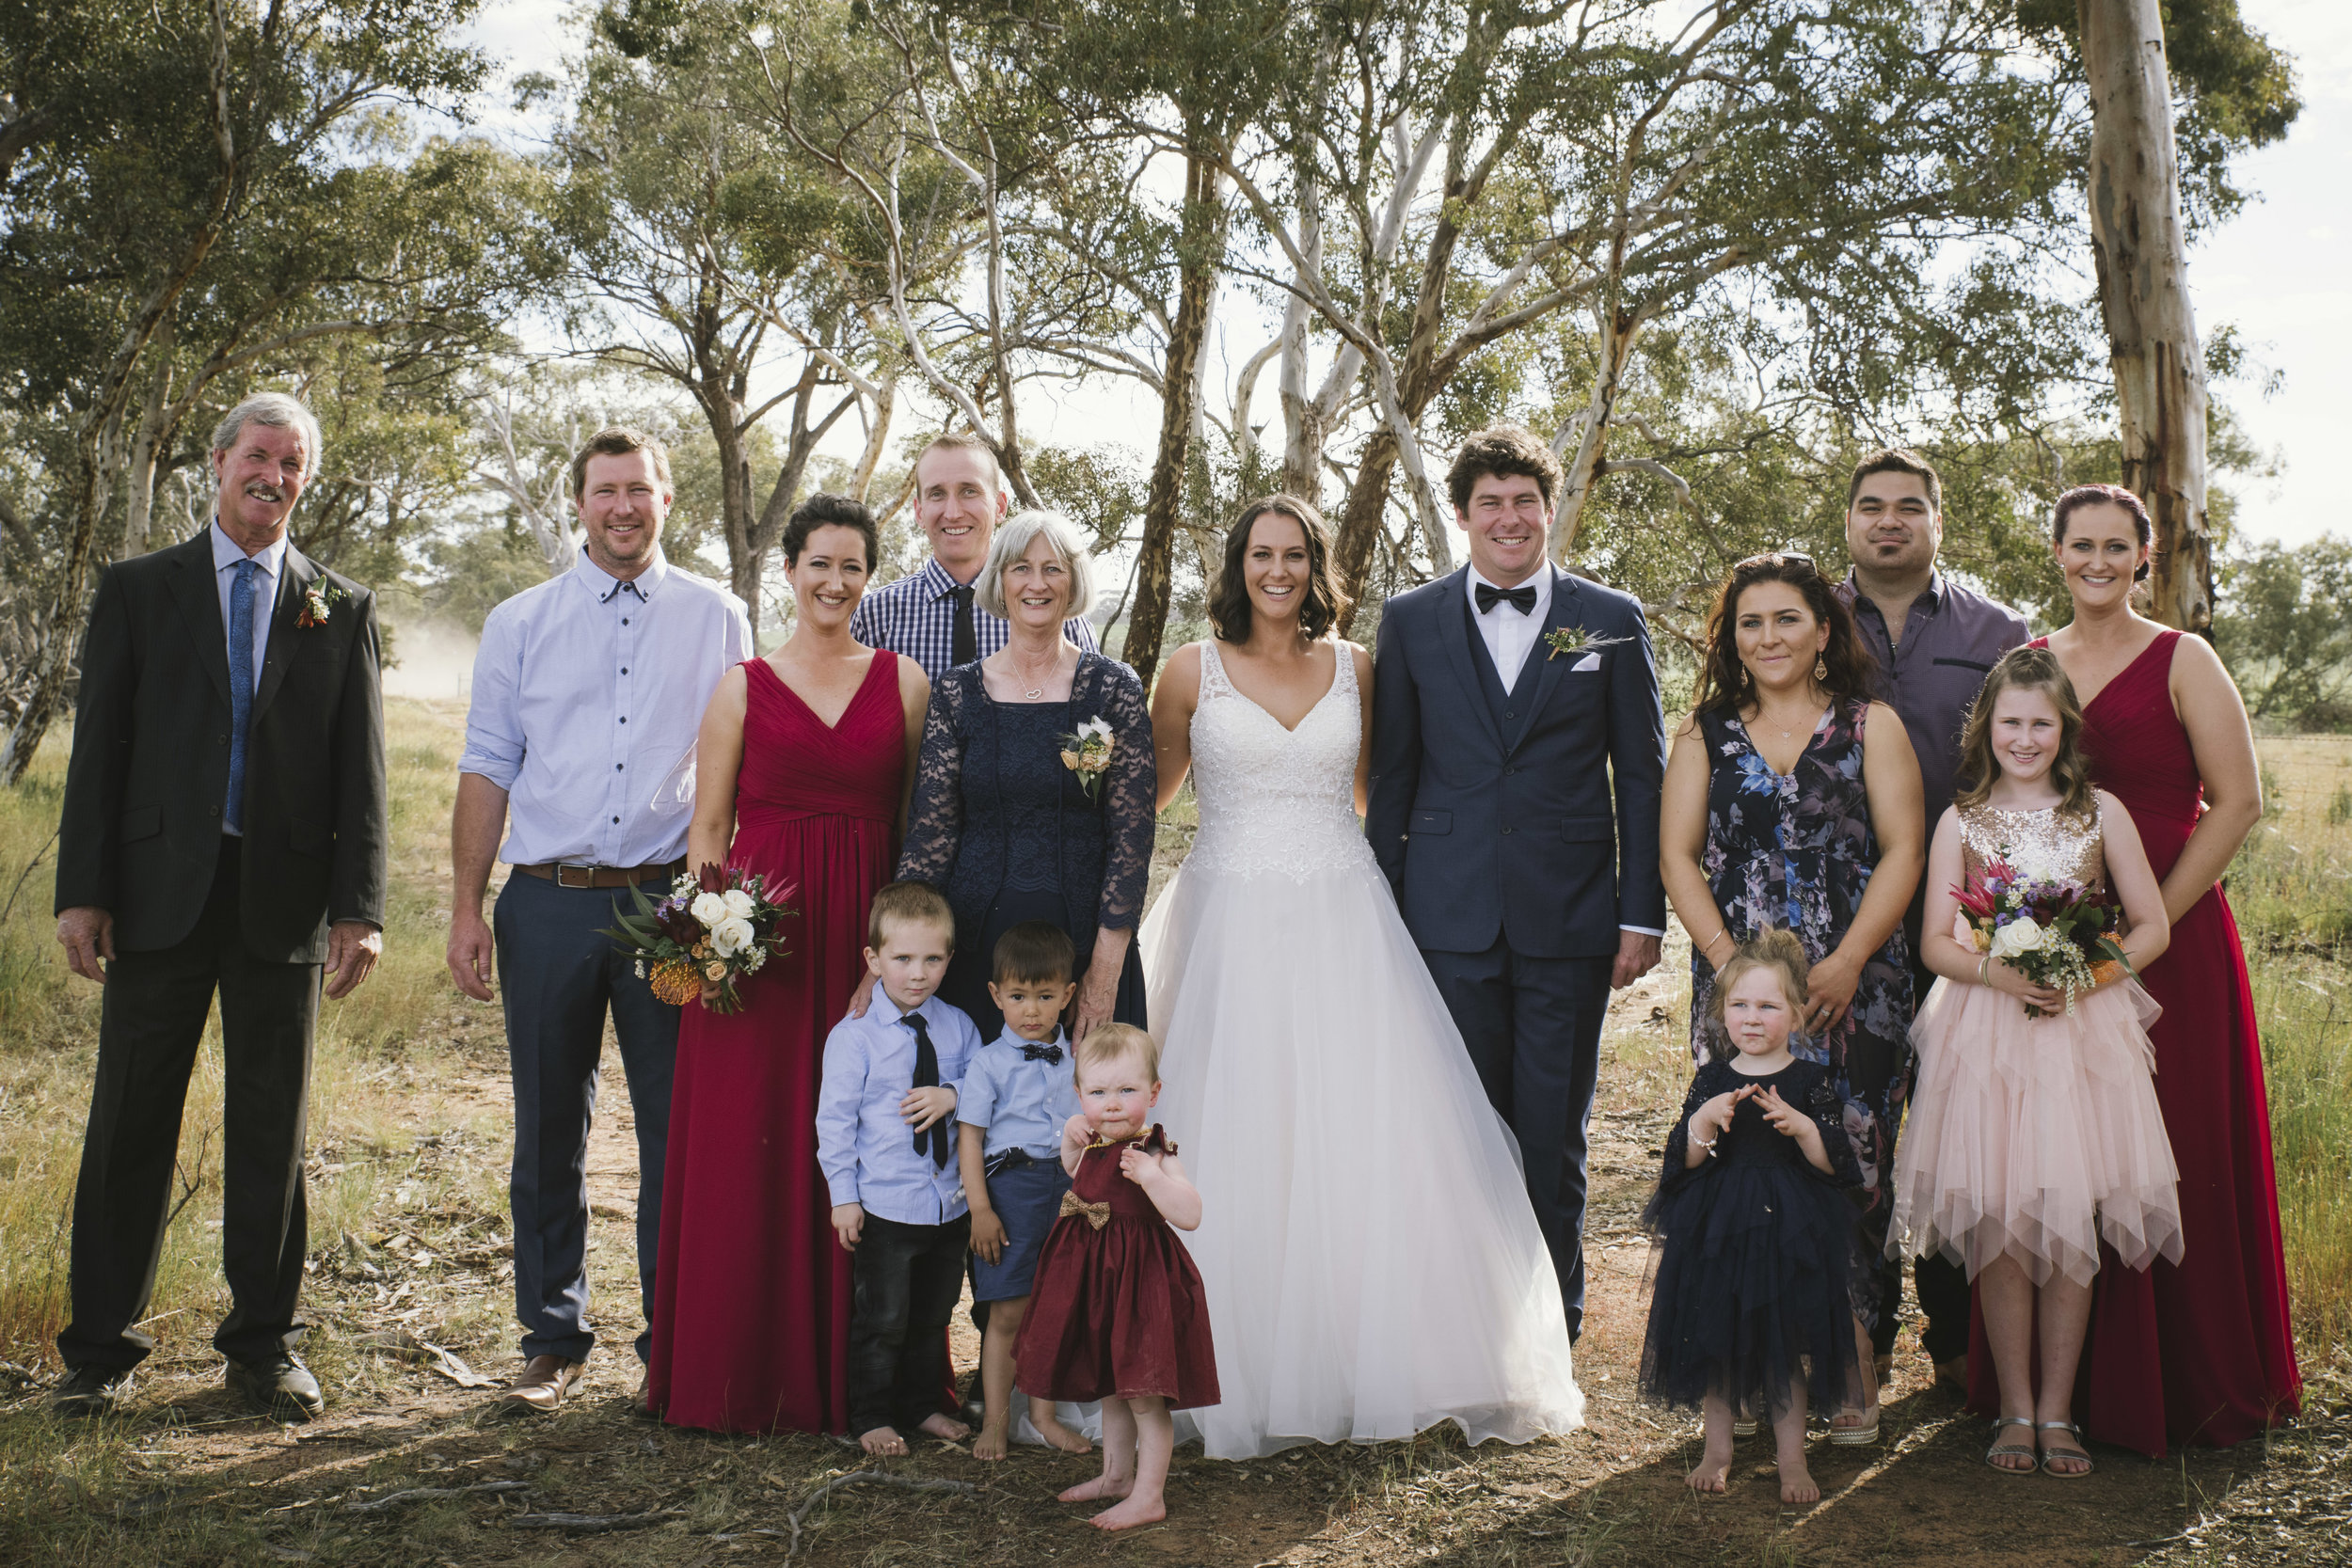 Angie Roe Photography Wheatbelt Avon Valley Farm Wedding (31).jpg